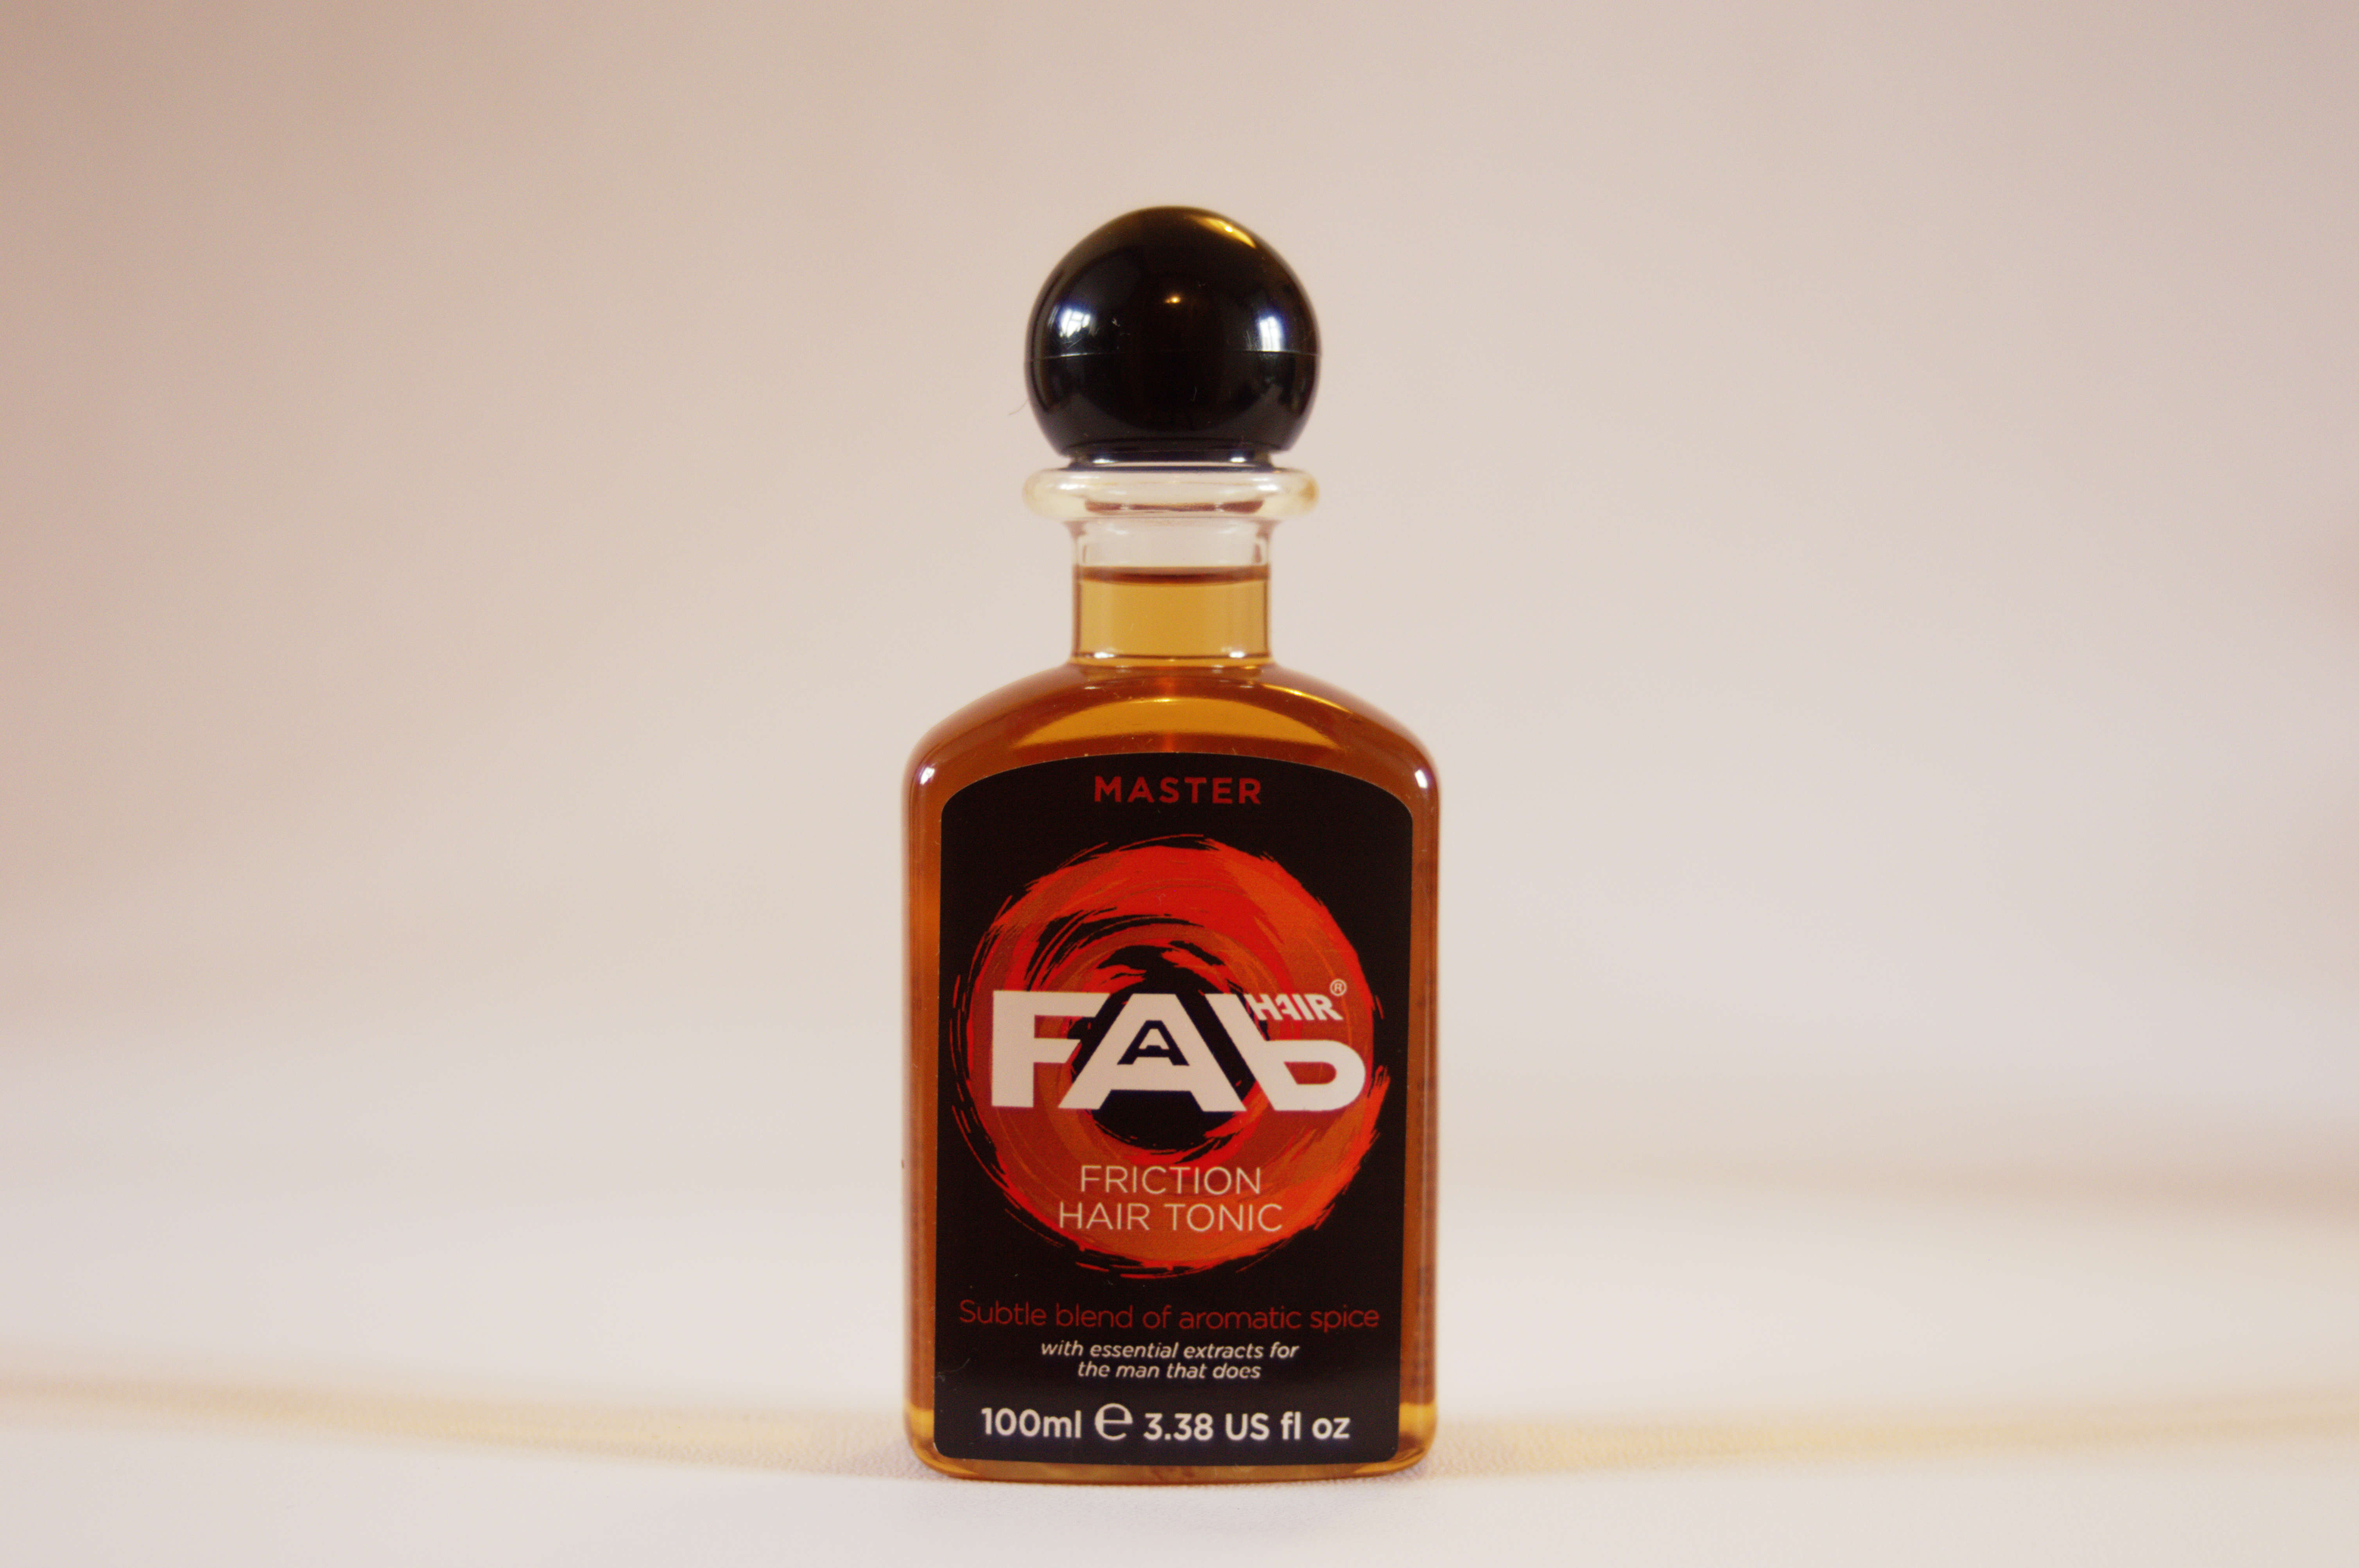 Master Friction Hair Tonic by FAB Front View